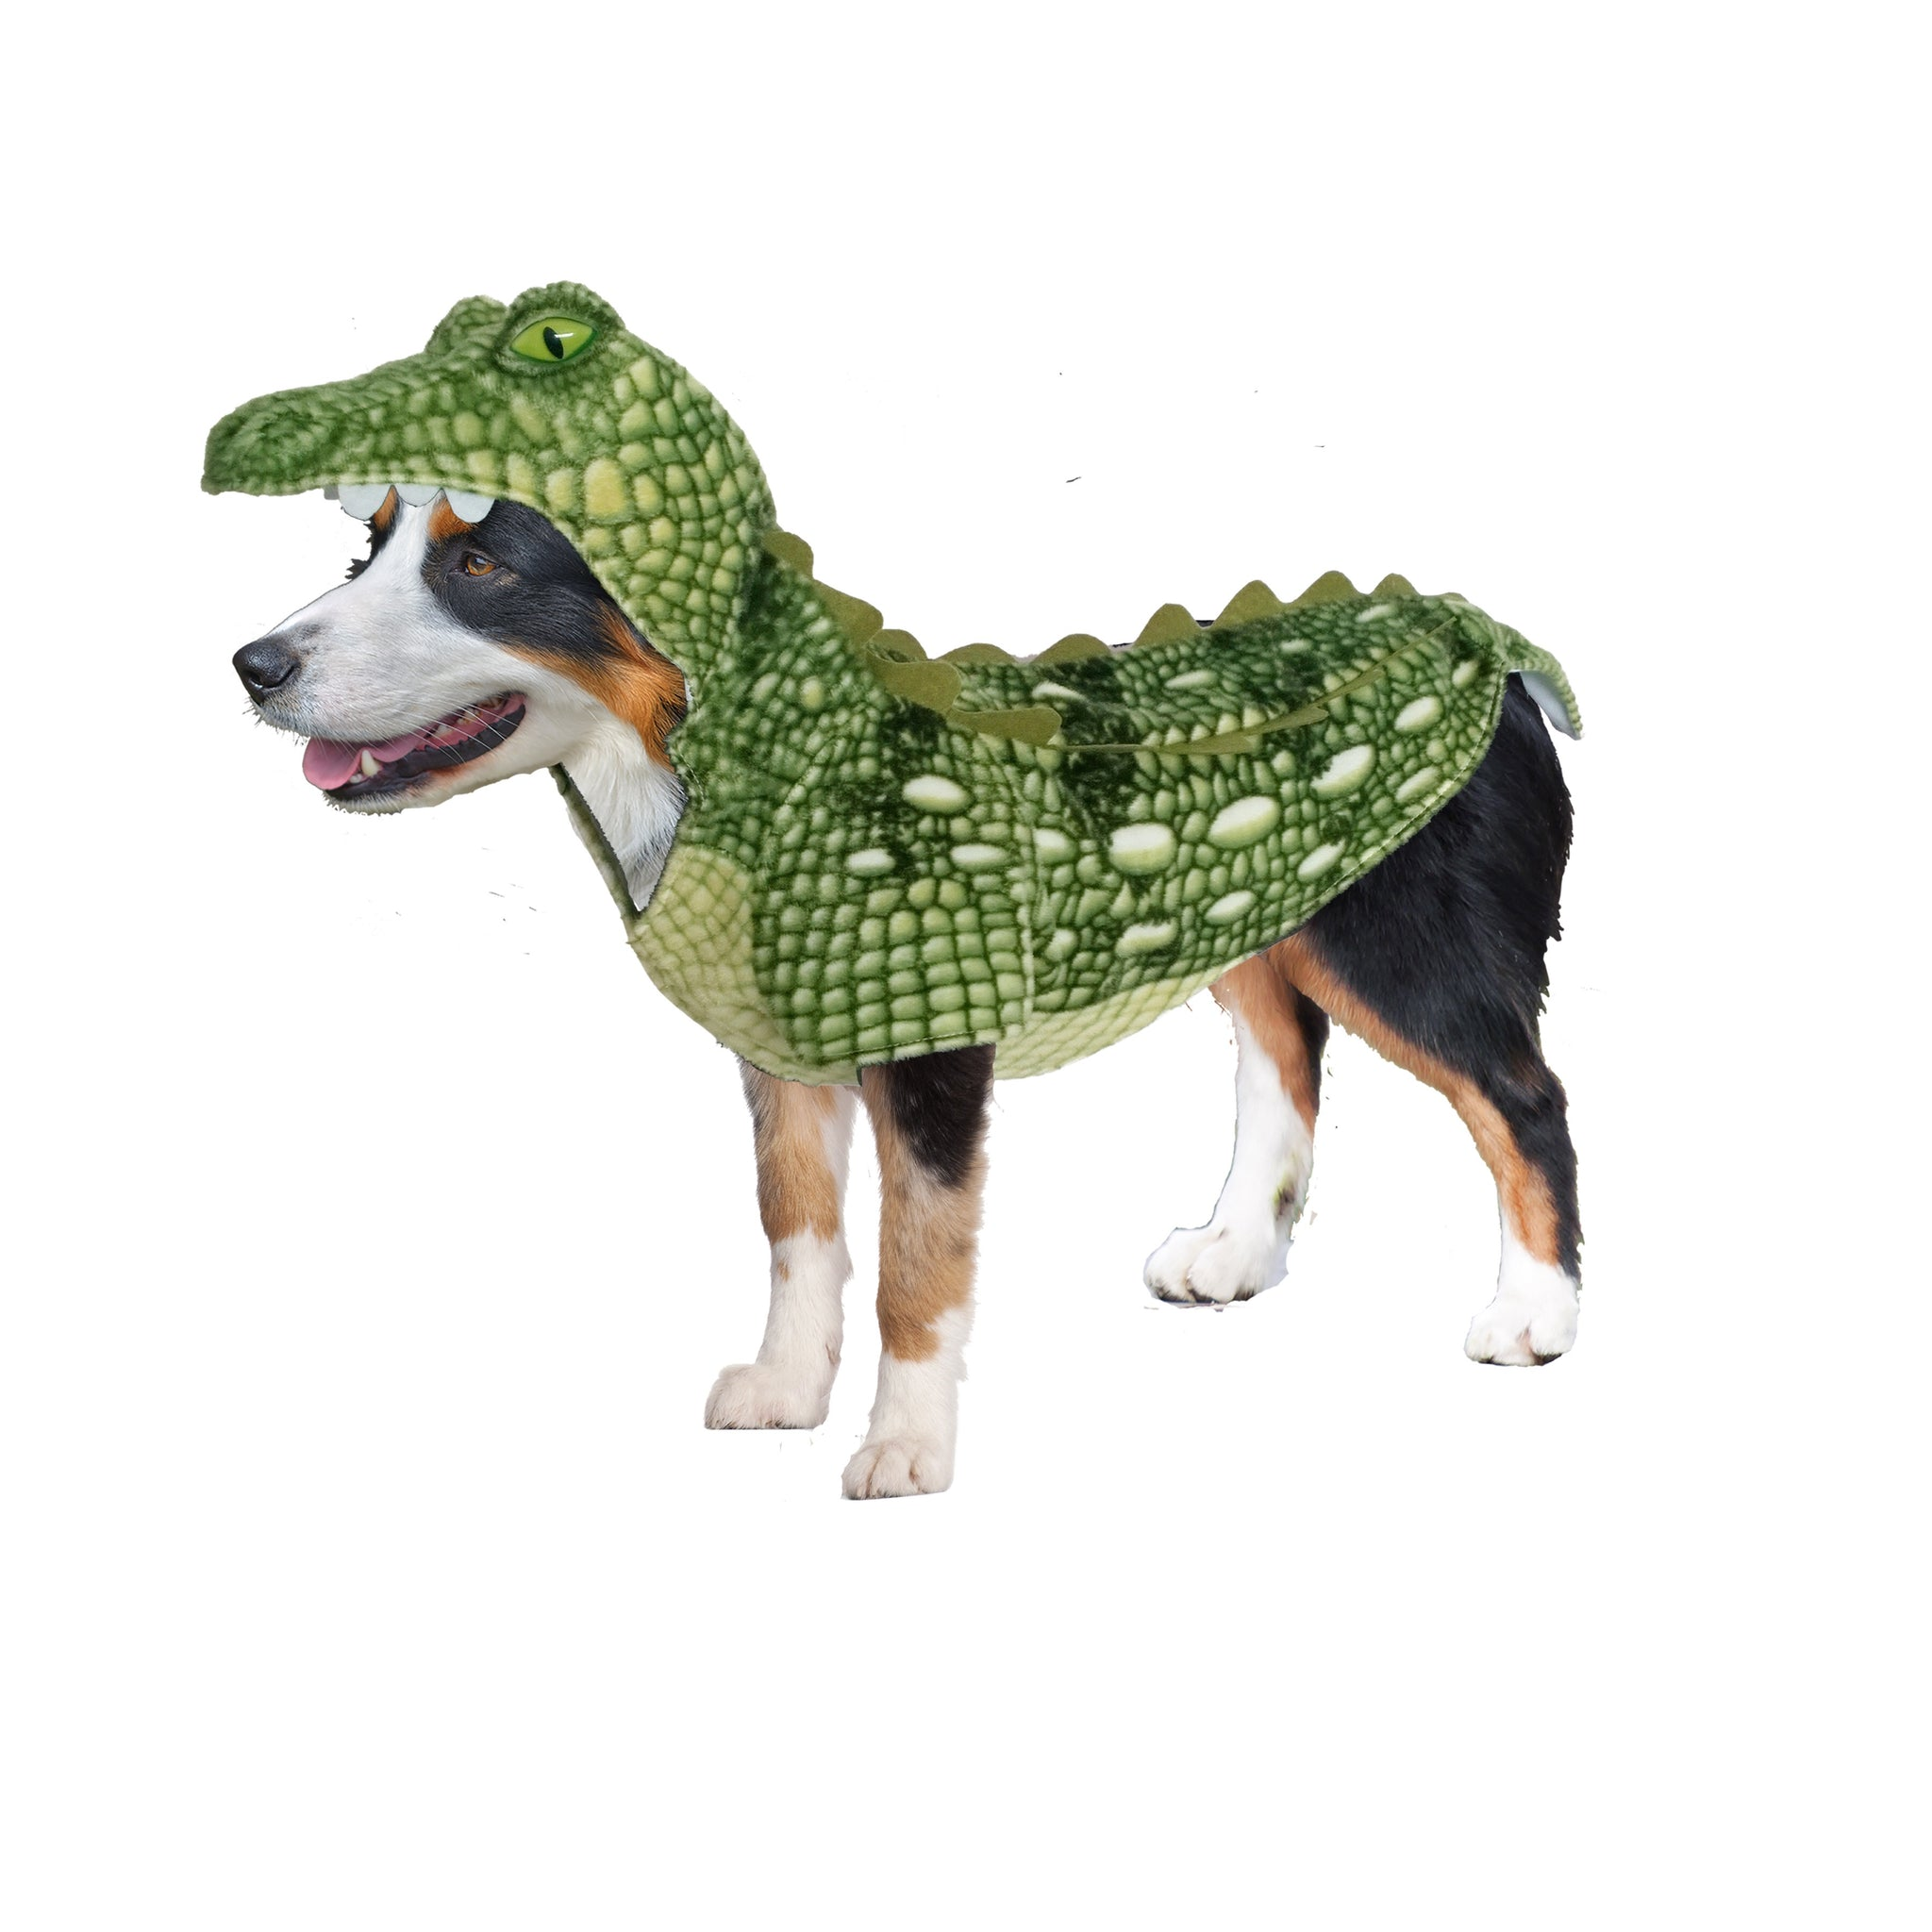 dog halloween costumes | swamp green crocodile costume – canine styles